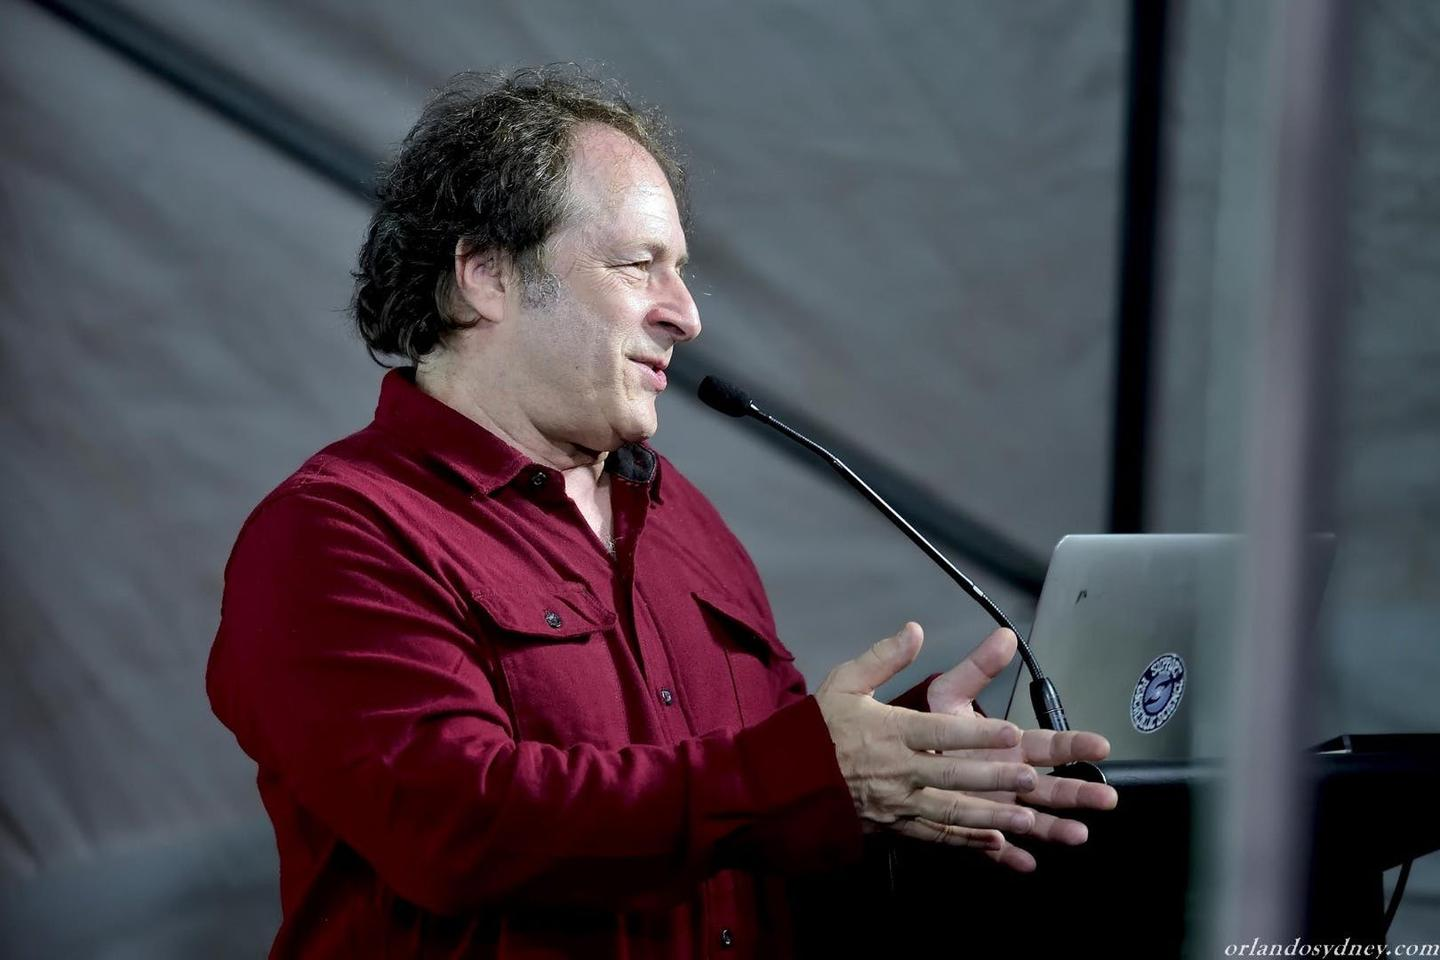 Rick Doblin presenting his pioneering research at the Entheogenesis Australis Psychedelic Symposiumin late 2017